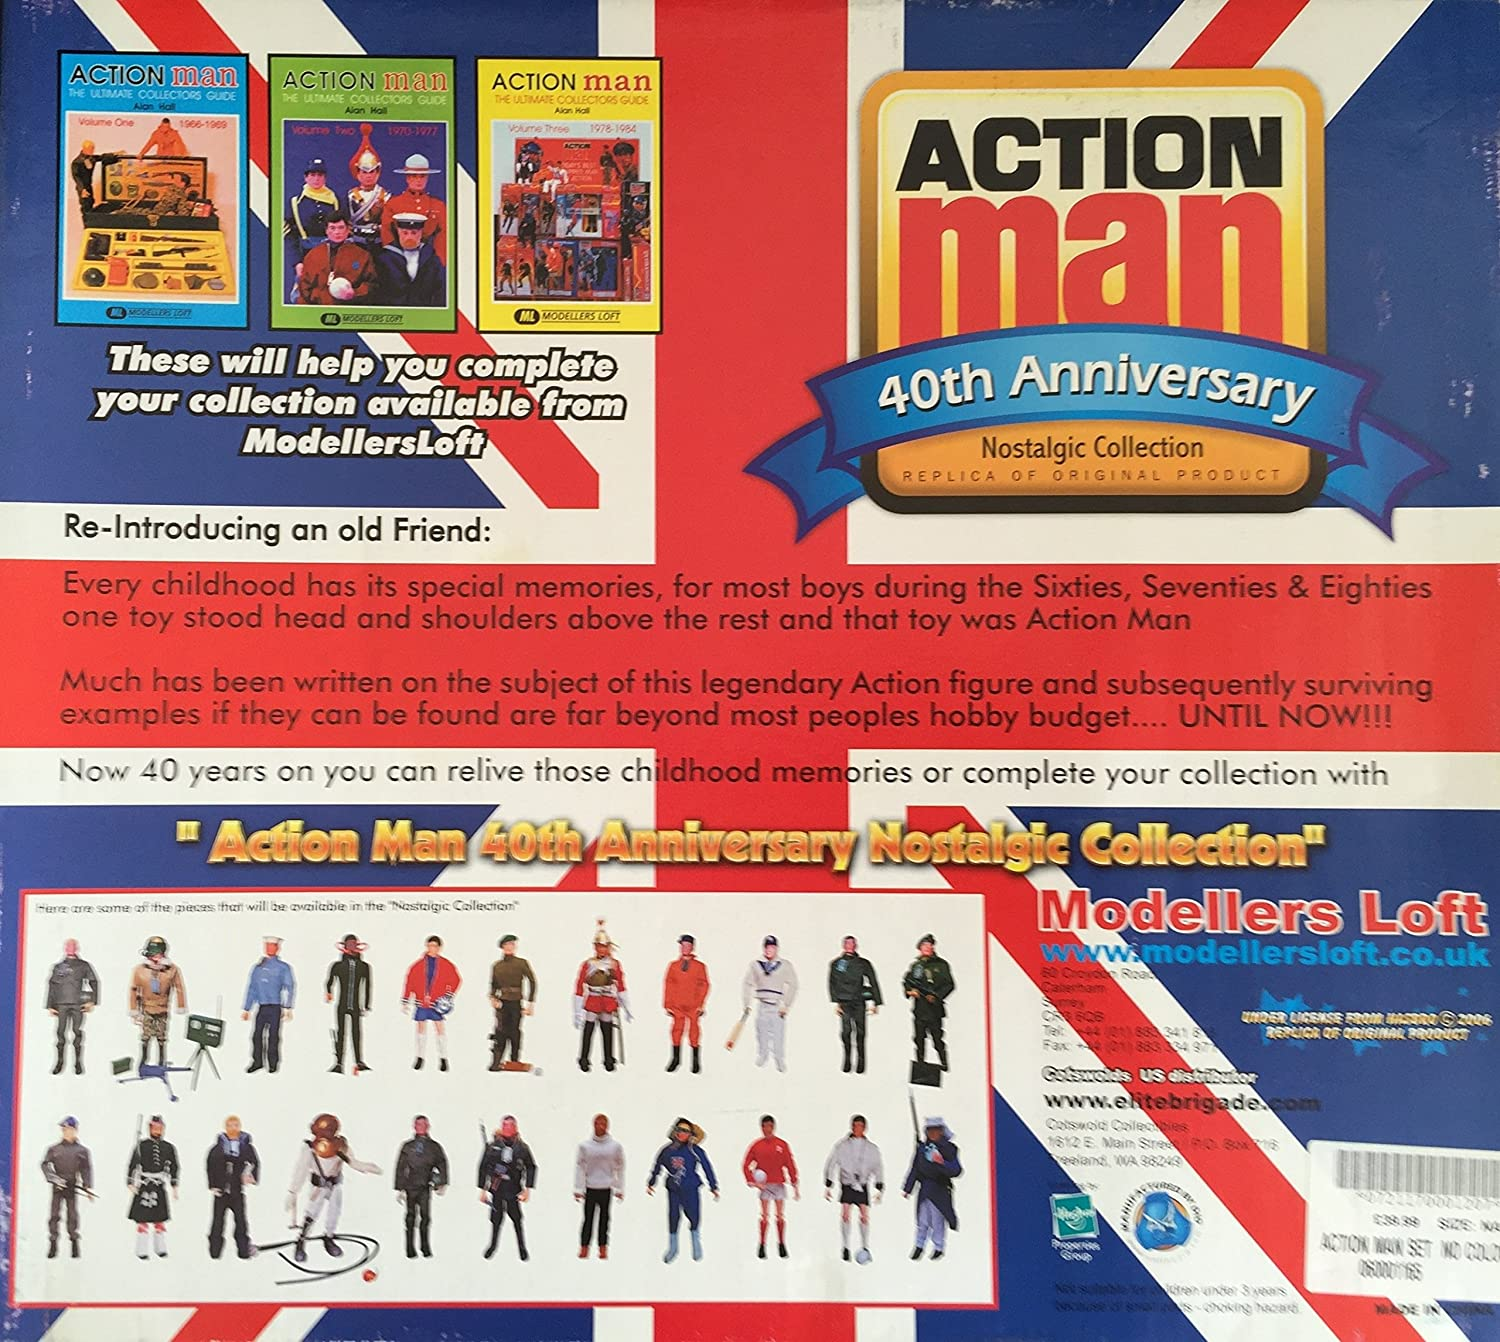 action man 40th anniversary nostalgic collection famous football action man 40th anniversary nostalgic collection famous football clubs chelsea includes action man chelsea football kit box set brand new shop stock